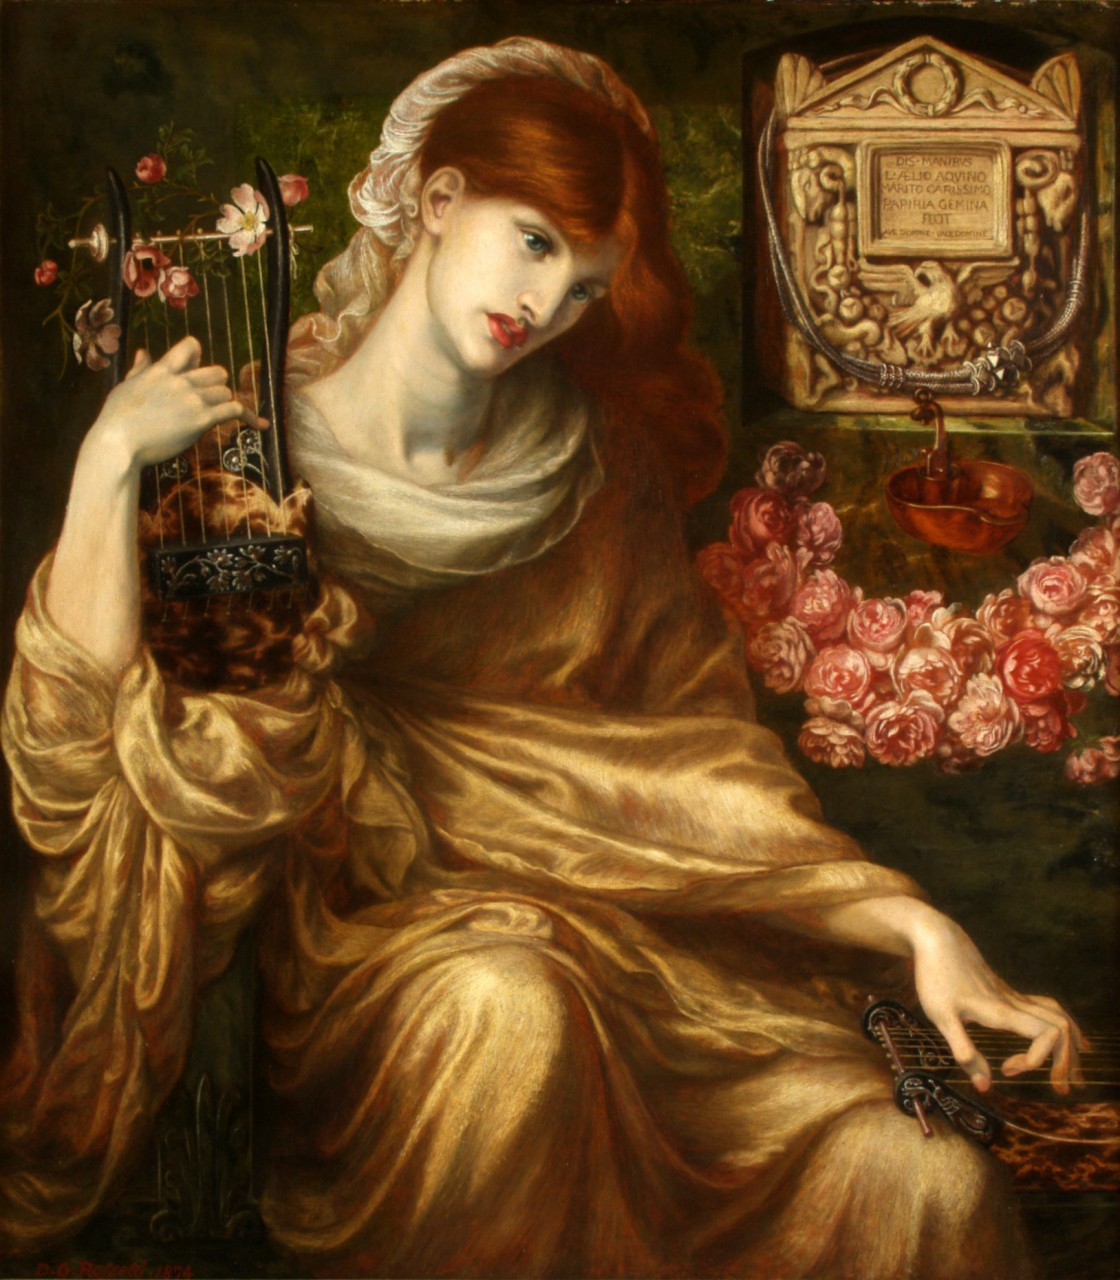 Roman Widow (Dîs Manibus) 1874 by Dante Gabriel Rosetti (English, 1828–1882, Oil on canvas, 41 ¾ x 36 9/16) from the Museo de Arte de Ponce, Ponce, Puerto Rico